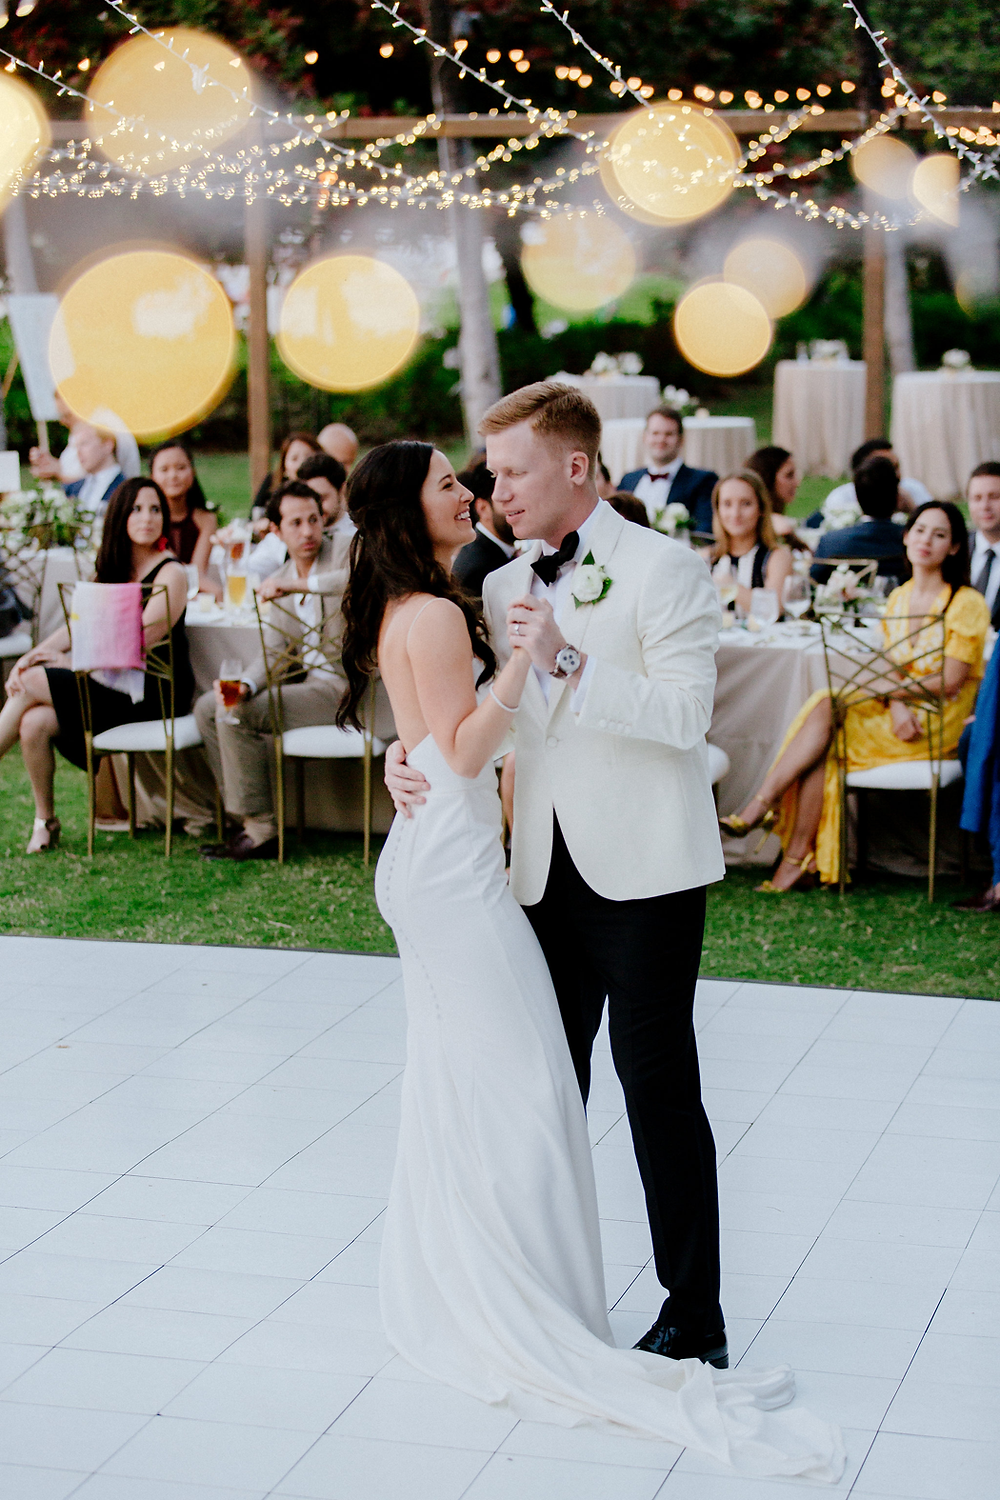 Wedding Reception Mauna Kea Hotel Big Island | Inspiration Events Hawaii | Hawaii Event Rentals